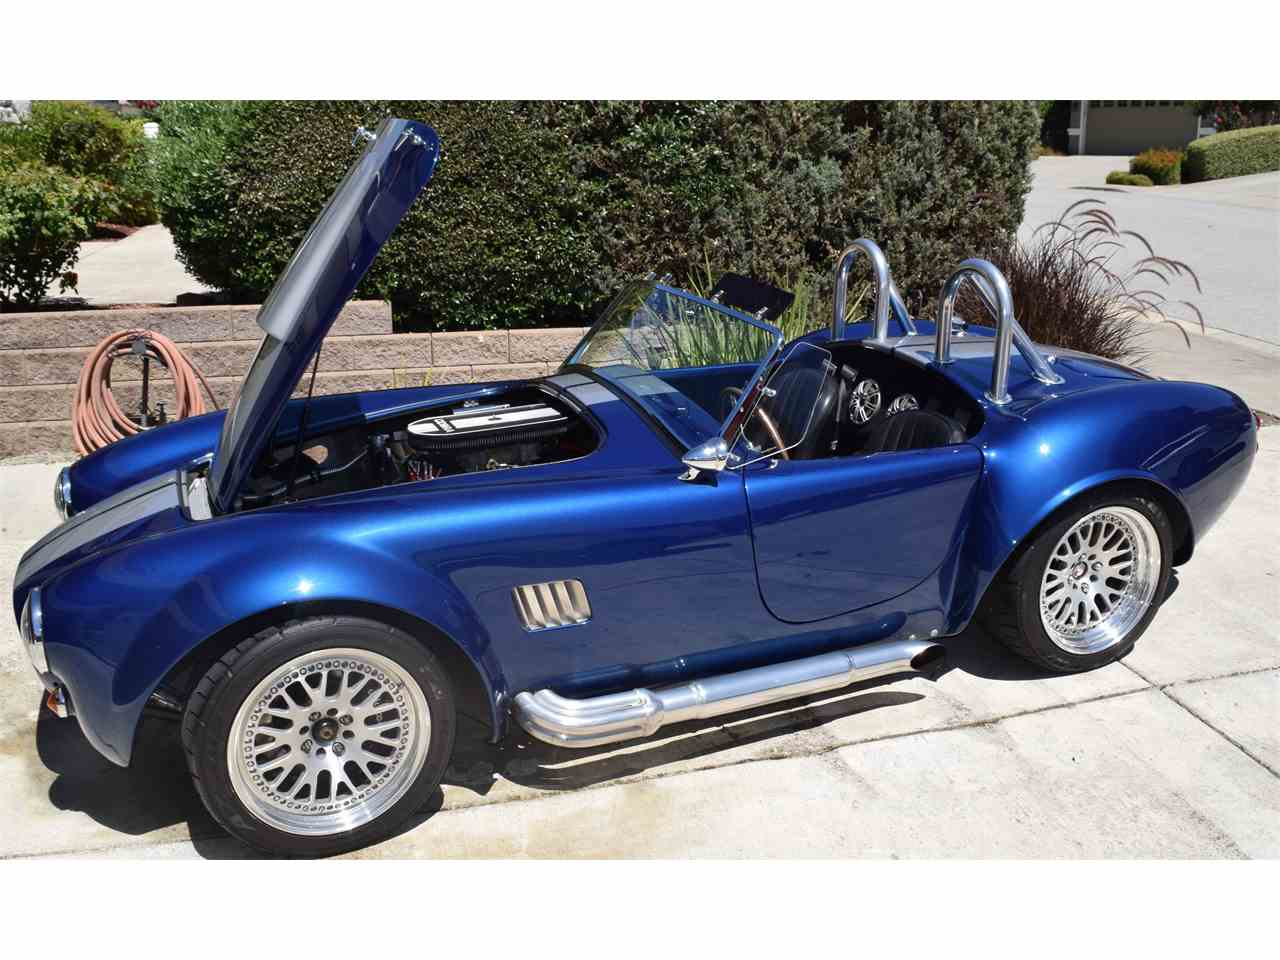 Large Picture of 1965 Cobra located in California - $34,900.00 Offered by a Private Seller - LFWC